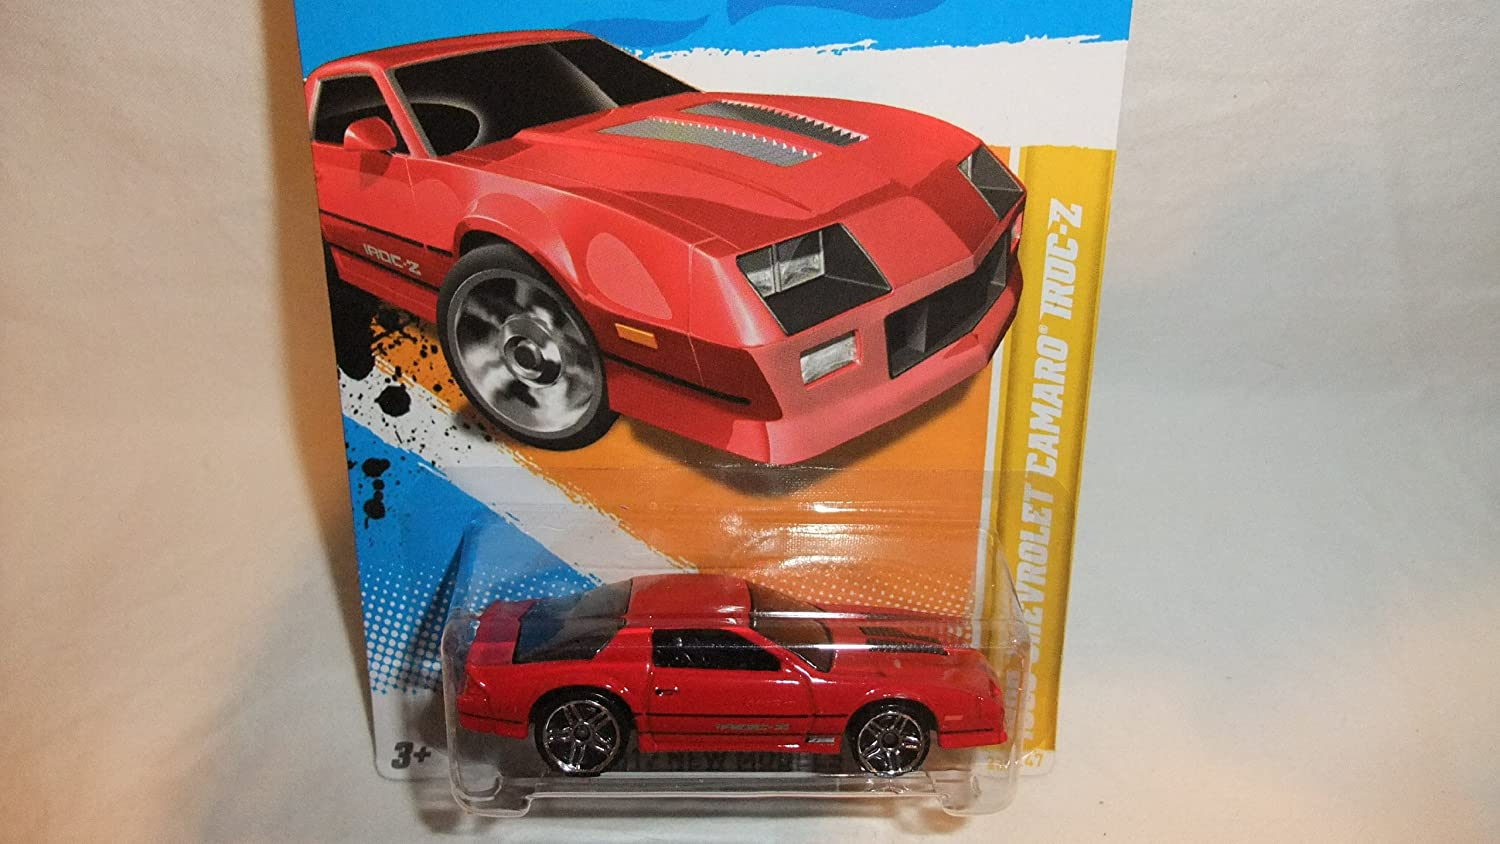 Hot Wheels 2012-022 New Models 1985 Chevrolet Camaro Iroc-Z Red 1:64 Scale Mattel